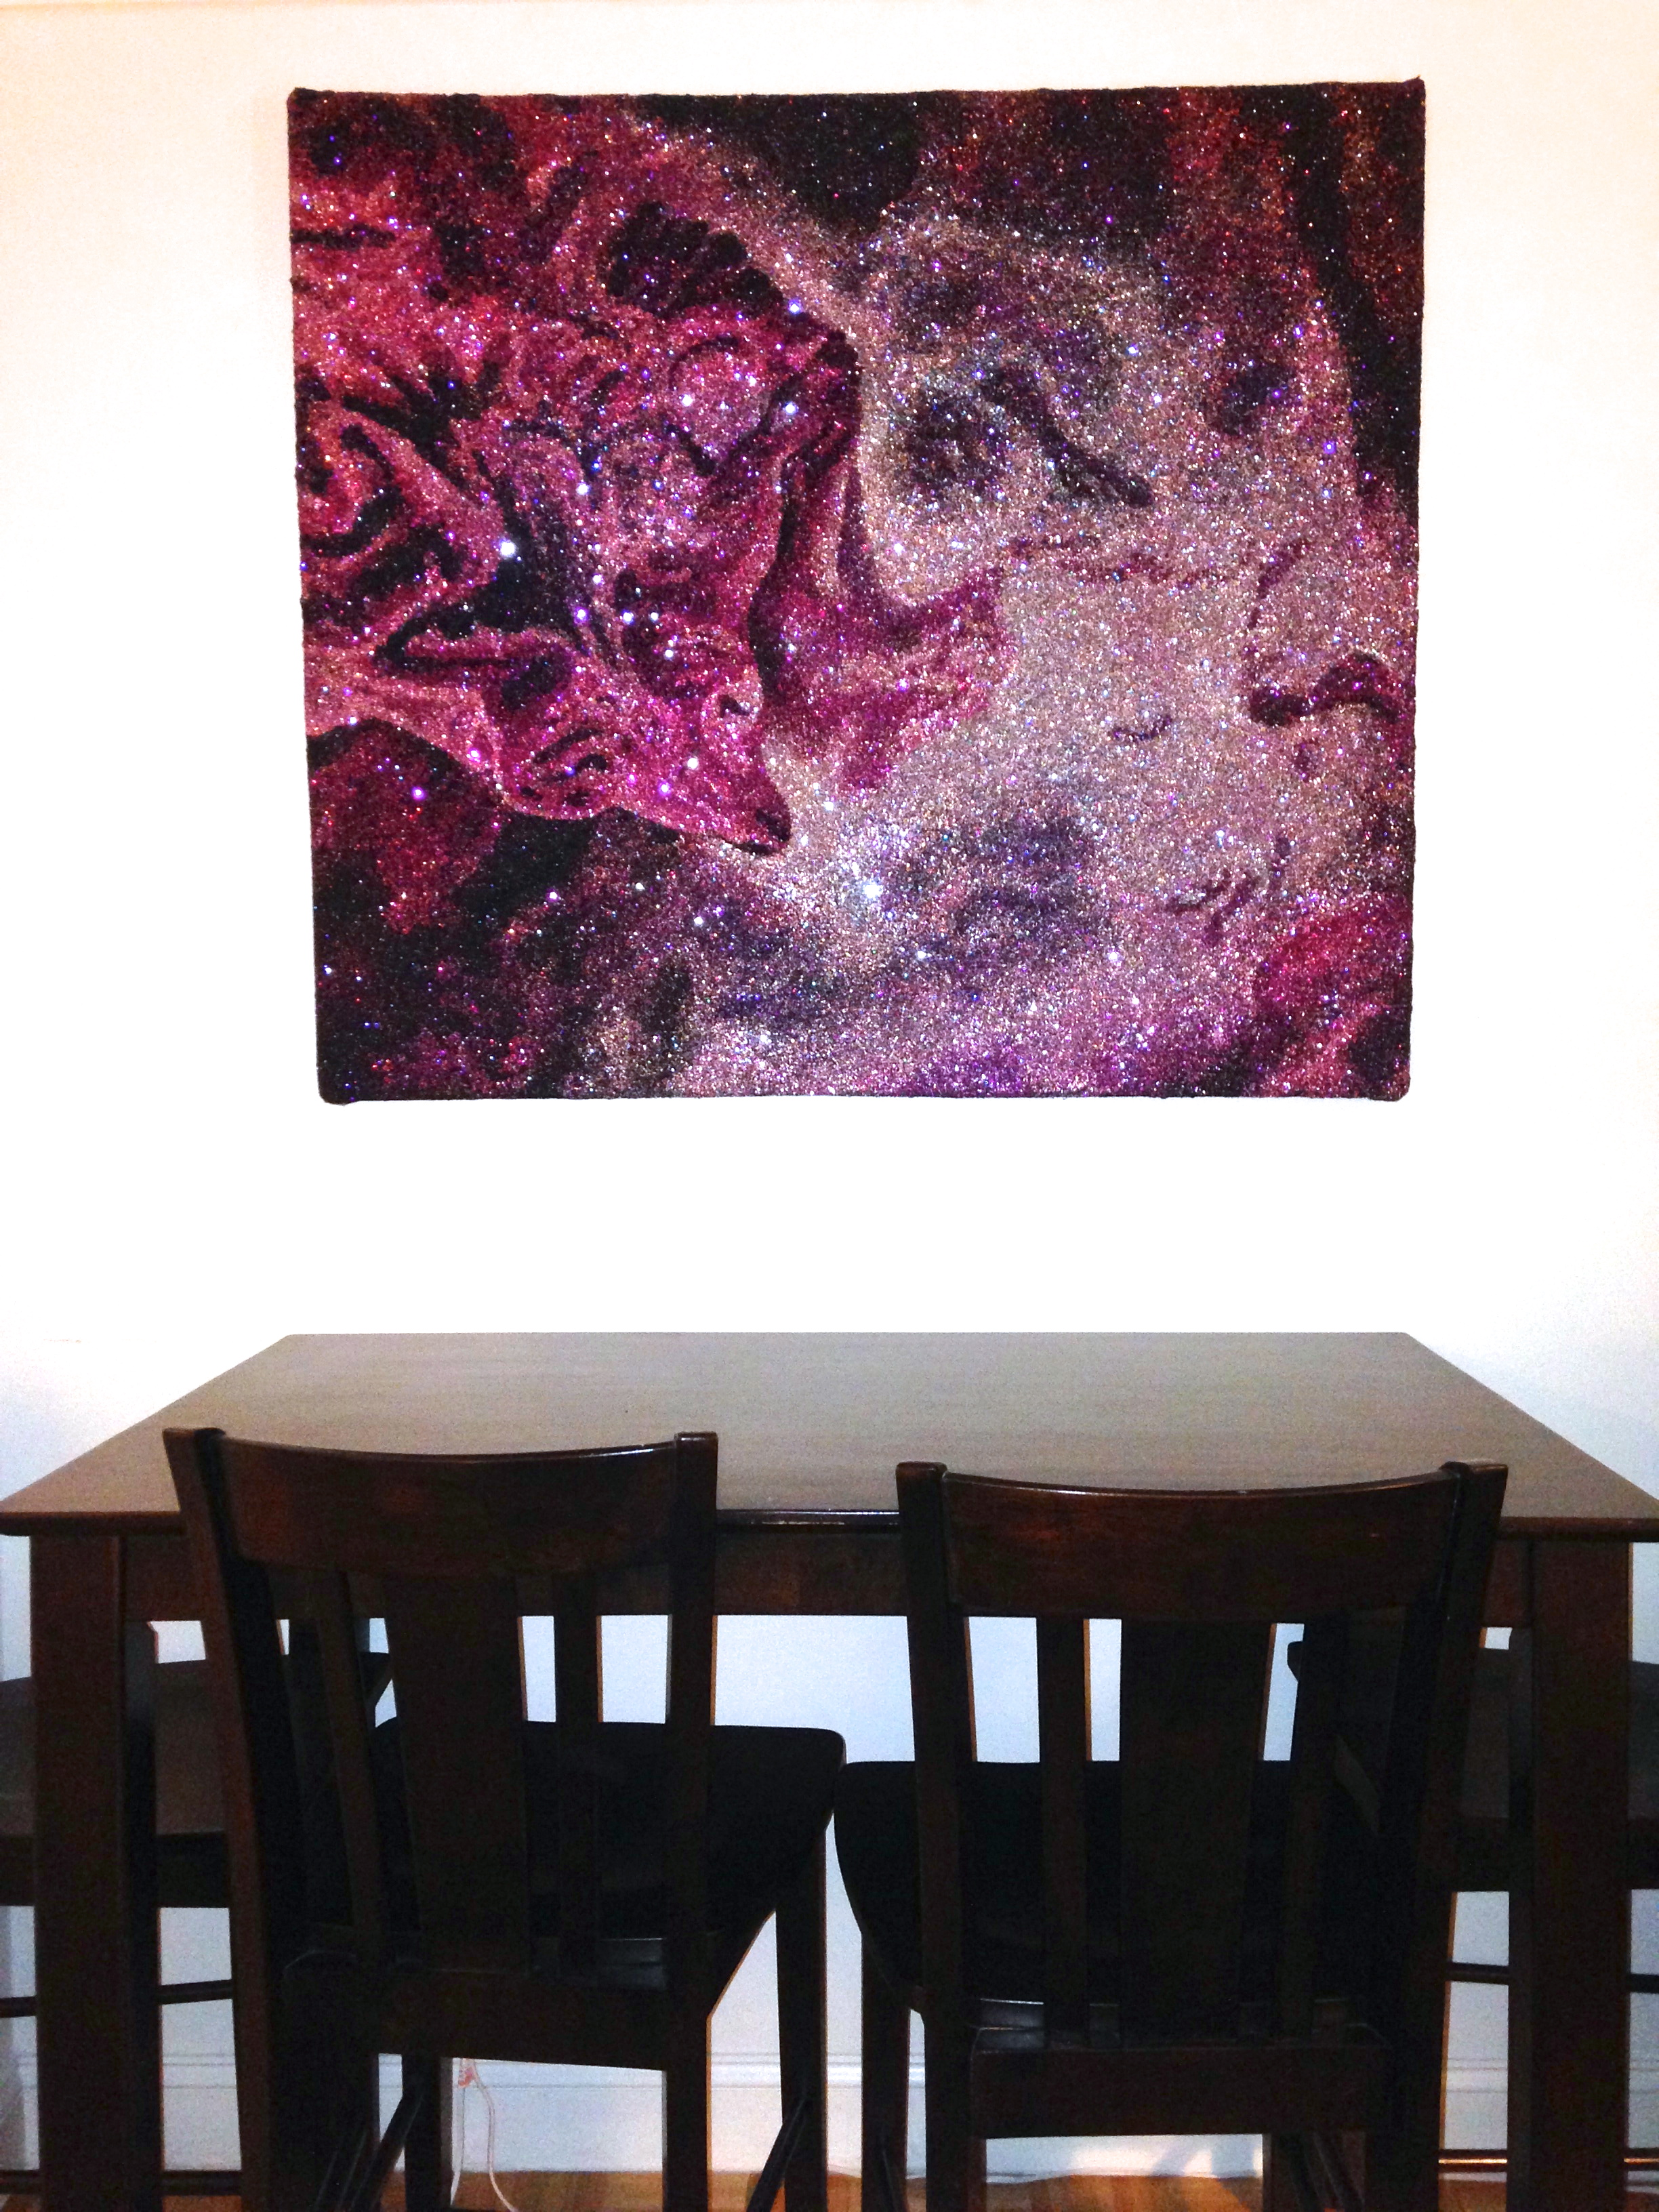 Newest addition to the Glitter Universe collection, which is currently on display in my dining room!  Fox Fur Nebula  45 x 45 inches Mixed Media (Glitter and Acrylic Gel Medium on Stretched Canvas) 2013